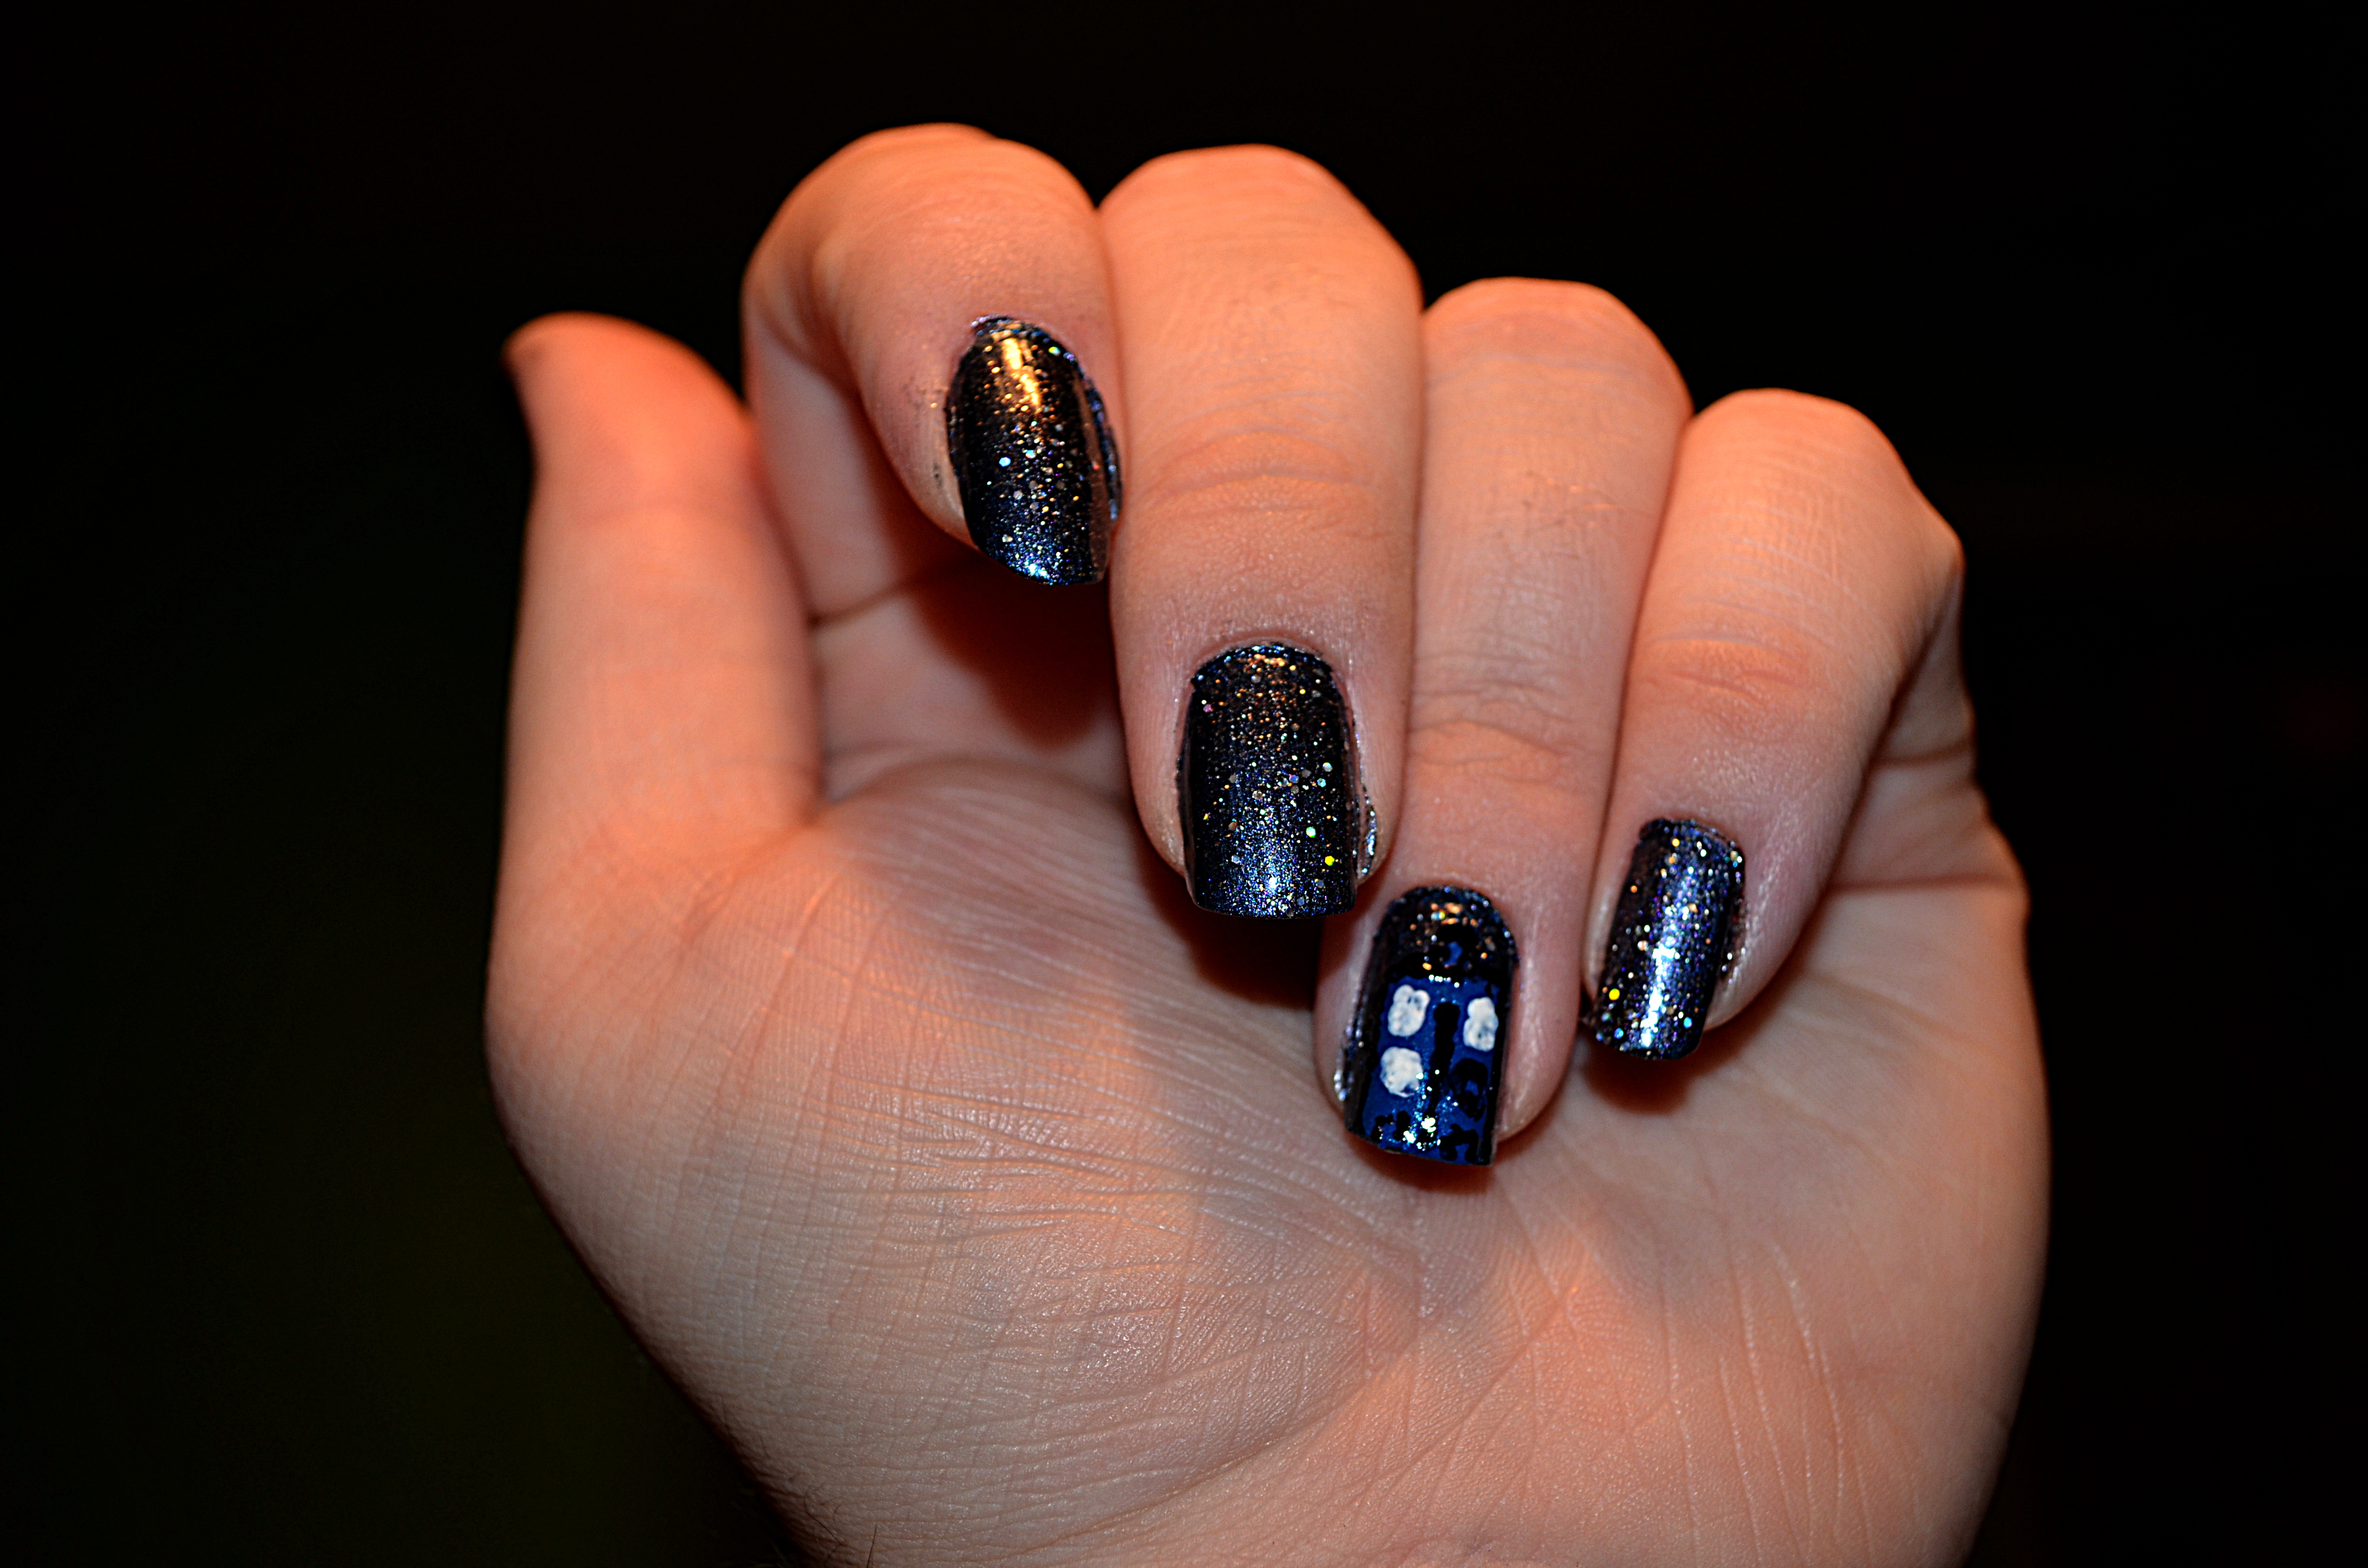 Space tardis nail art by sailorjessi on deviantart space tardis nail art by sailorjessi prinsesfo Gallery